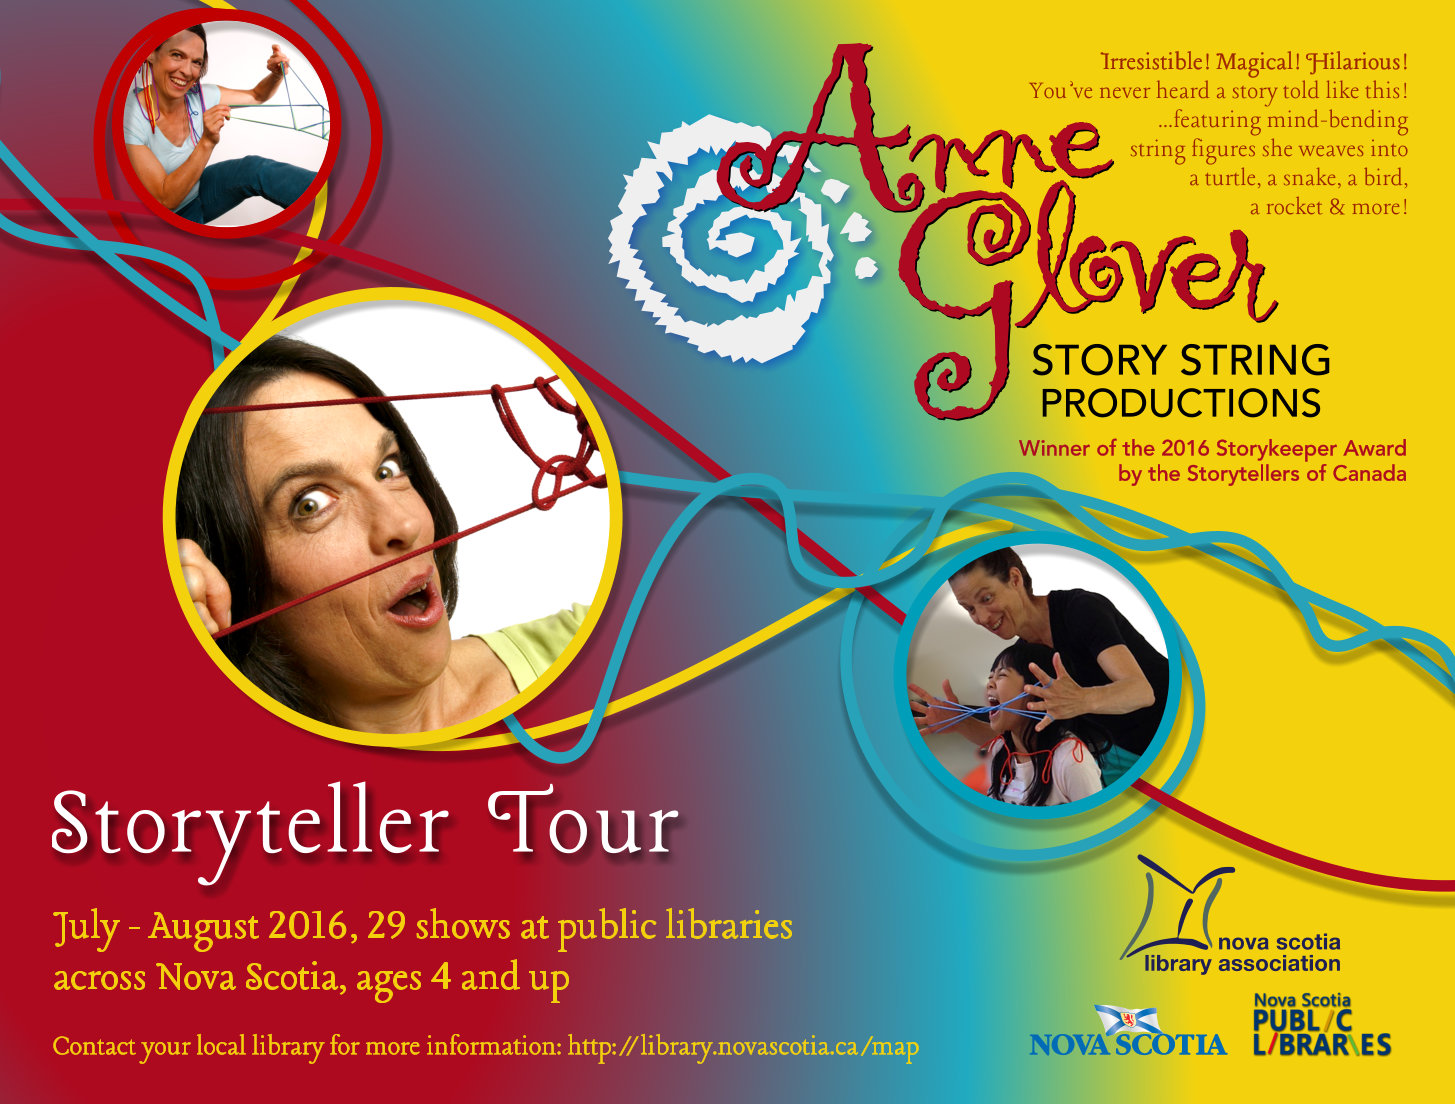 Anne Glover from Story string productions